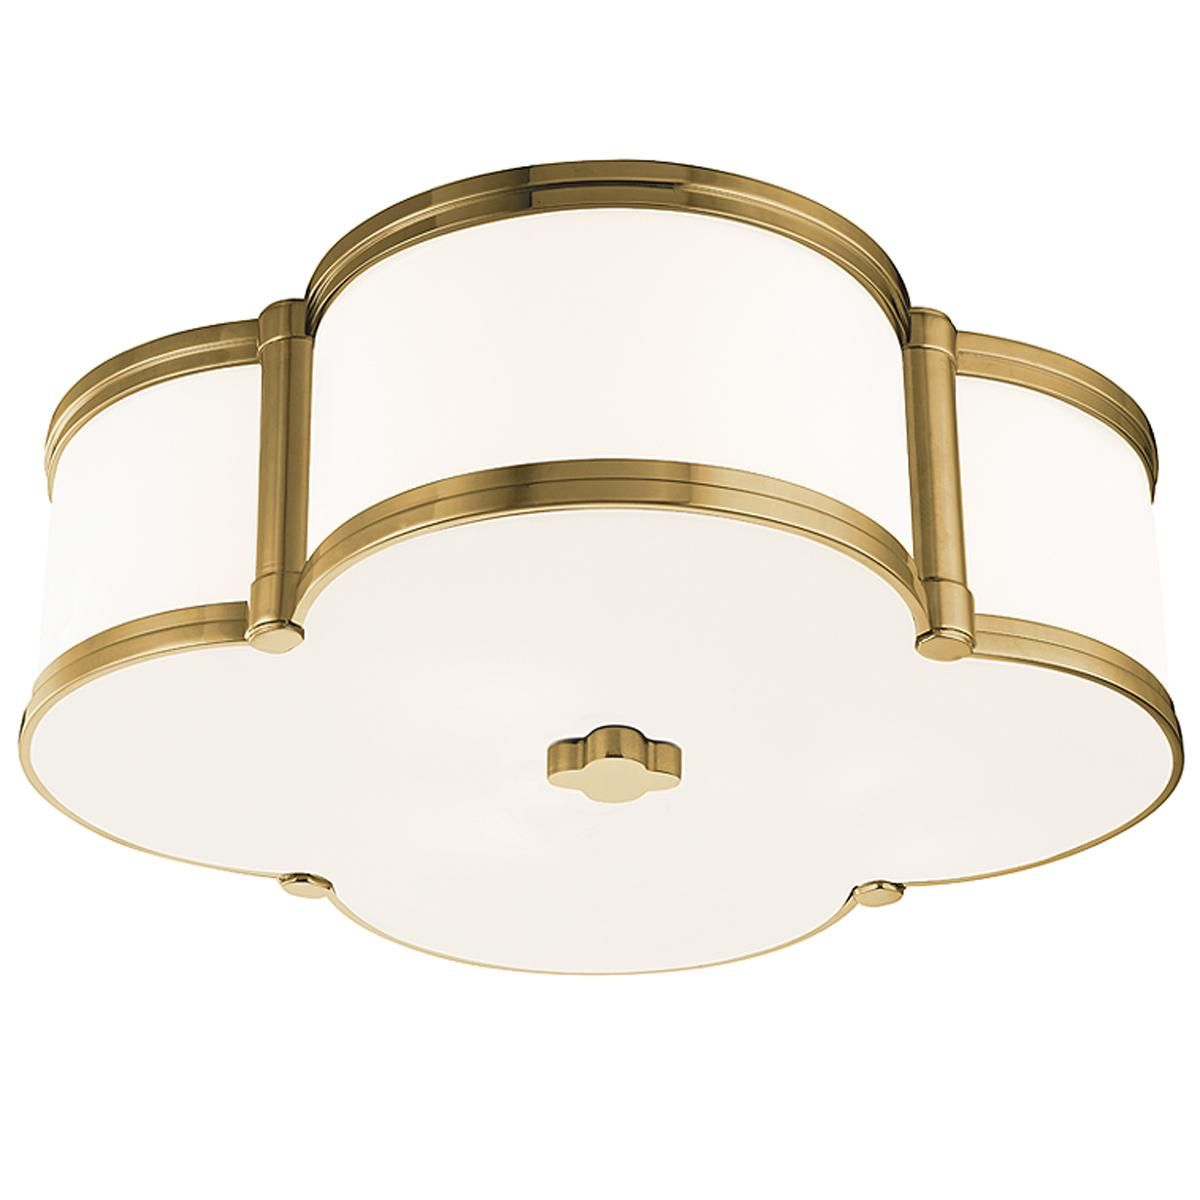 amax lighting 2625. Quatrefoil Scallop Ceiling Light Soft Scallops Form A Frame On Your In Polished Nickel, Aged Brass Or Old Bronze With Opal Glass. Amax Lighting 2625 T